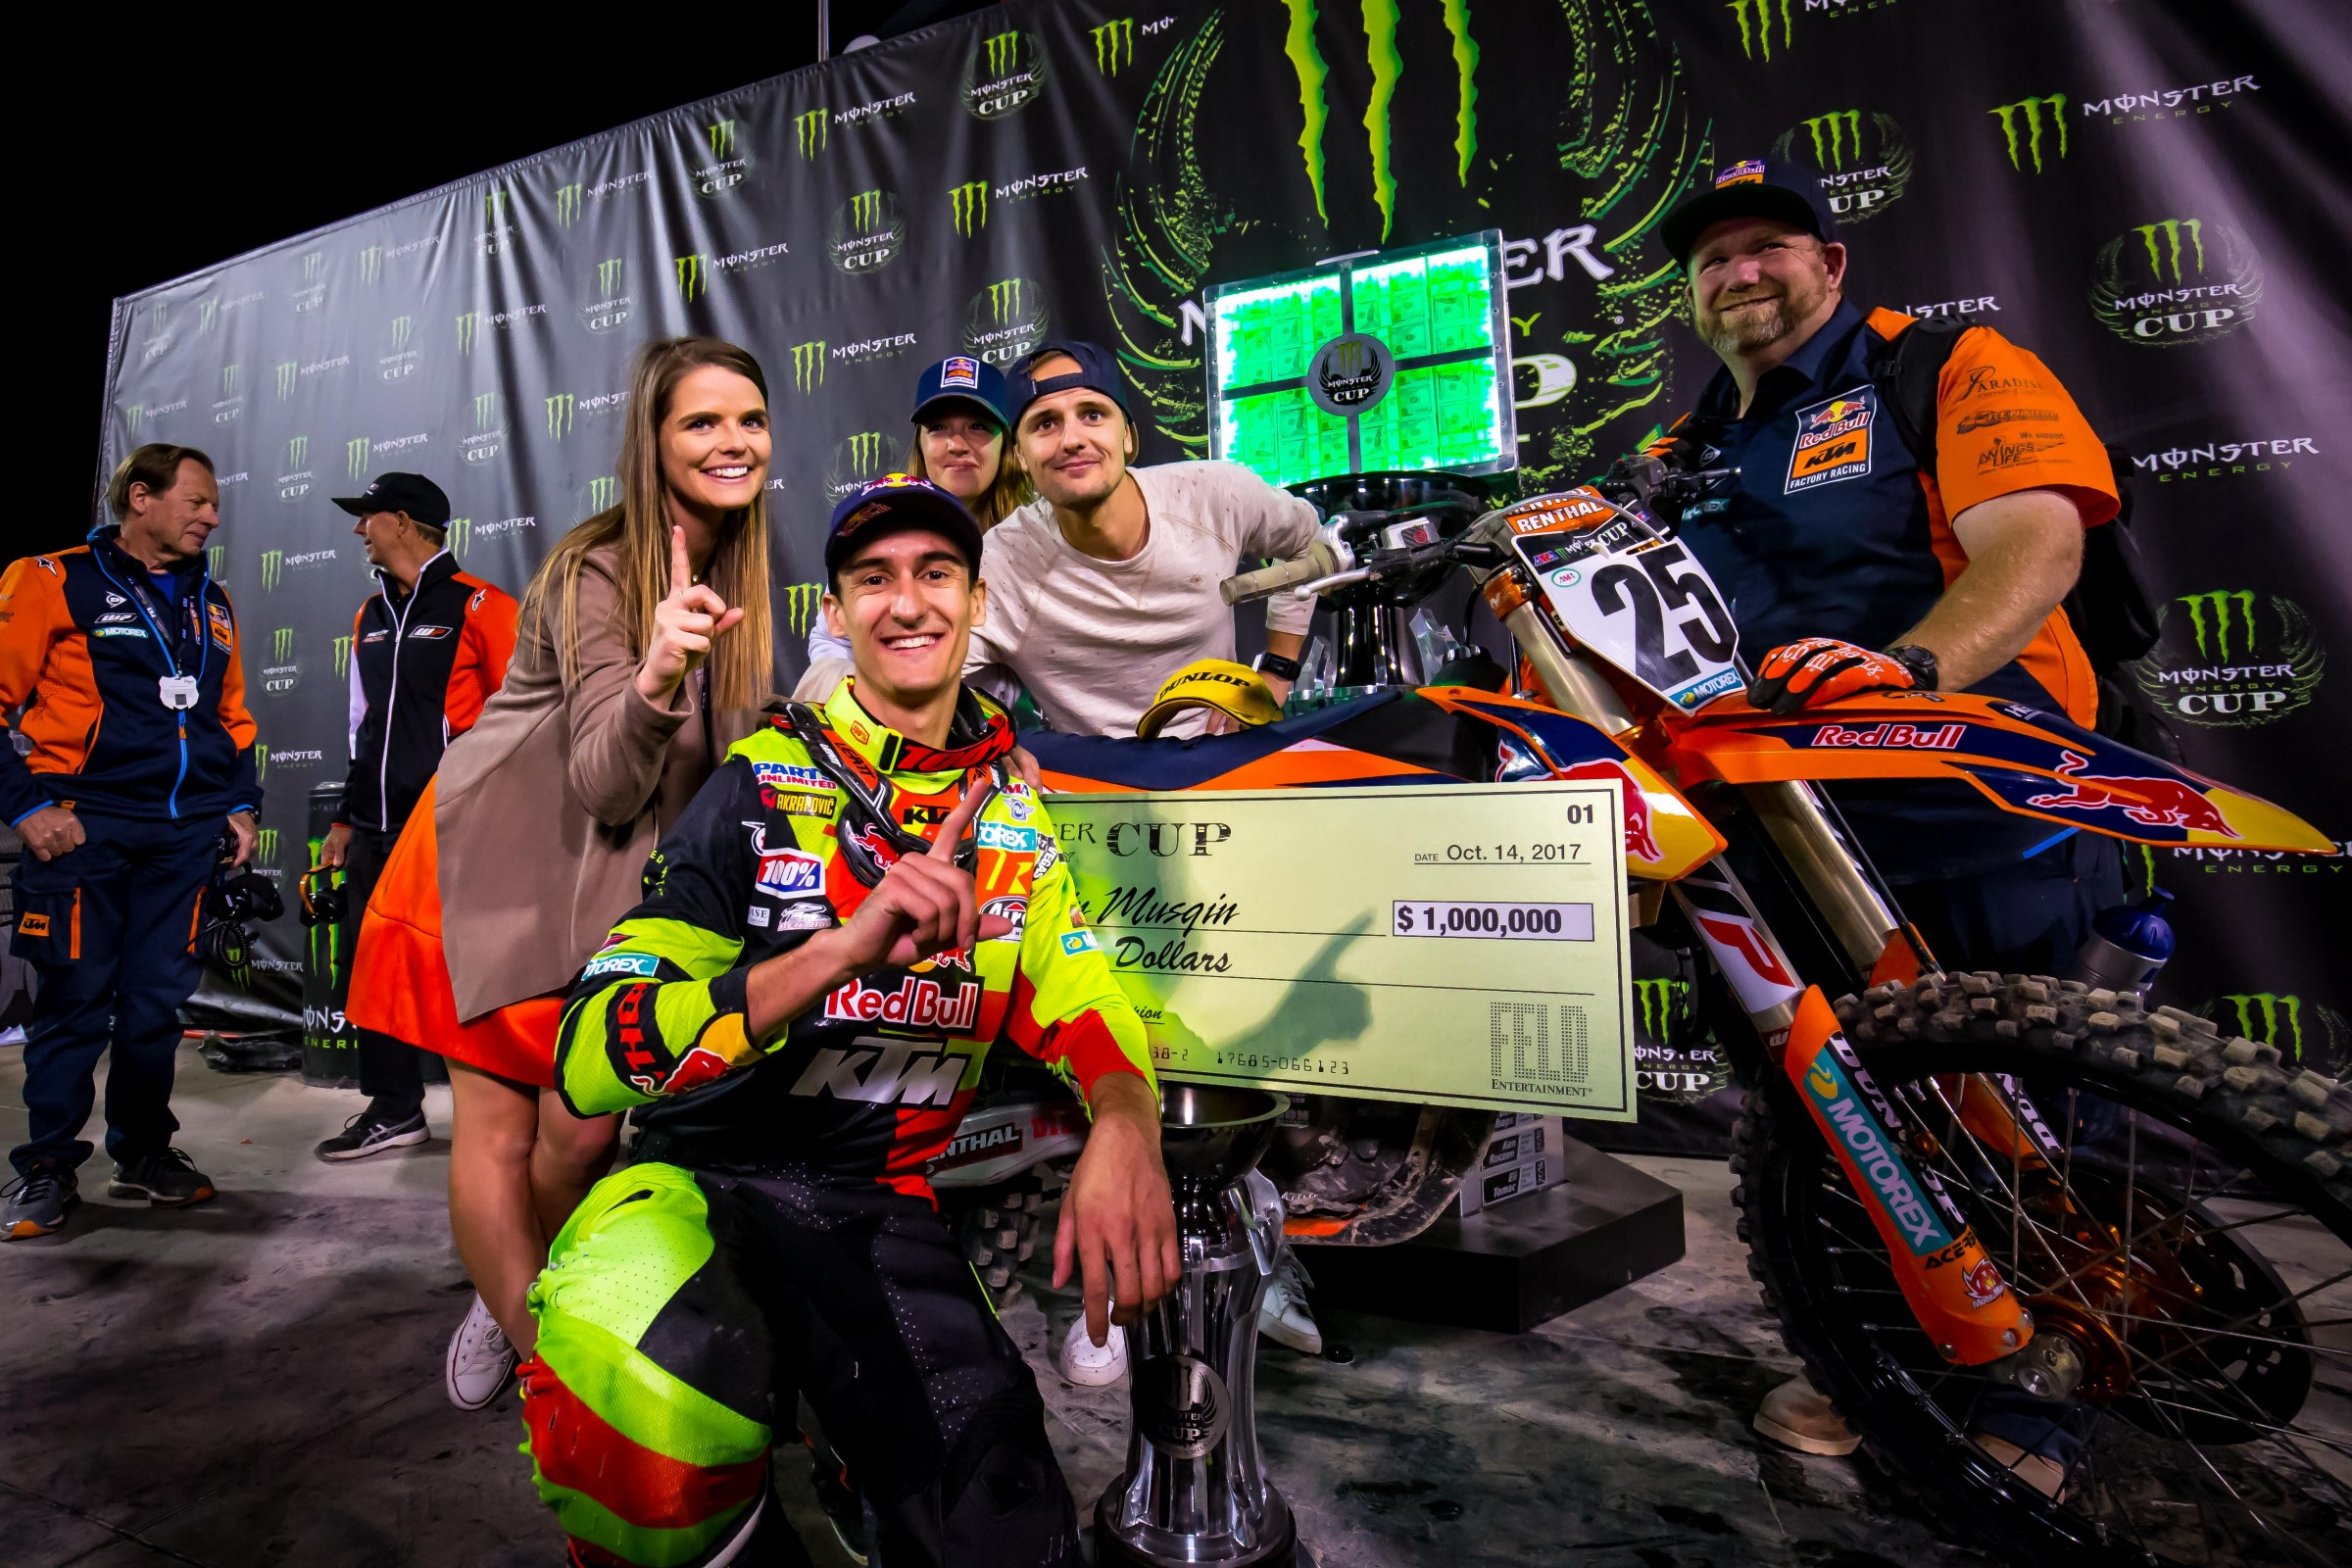 Musquin is only the second rider in history to win the Monster Million.